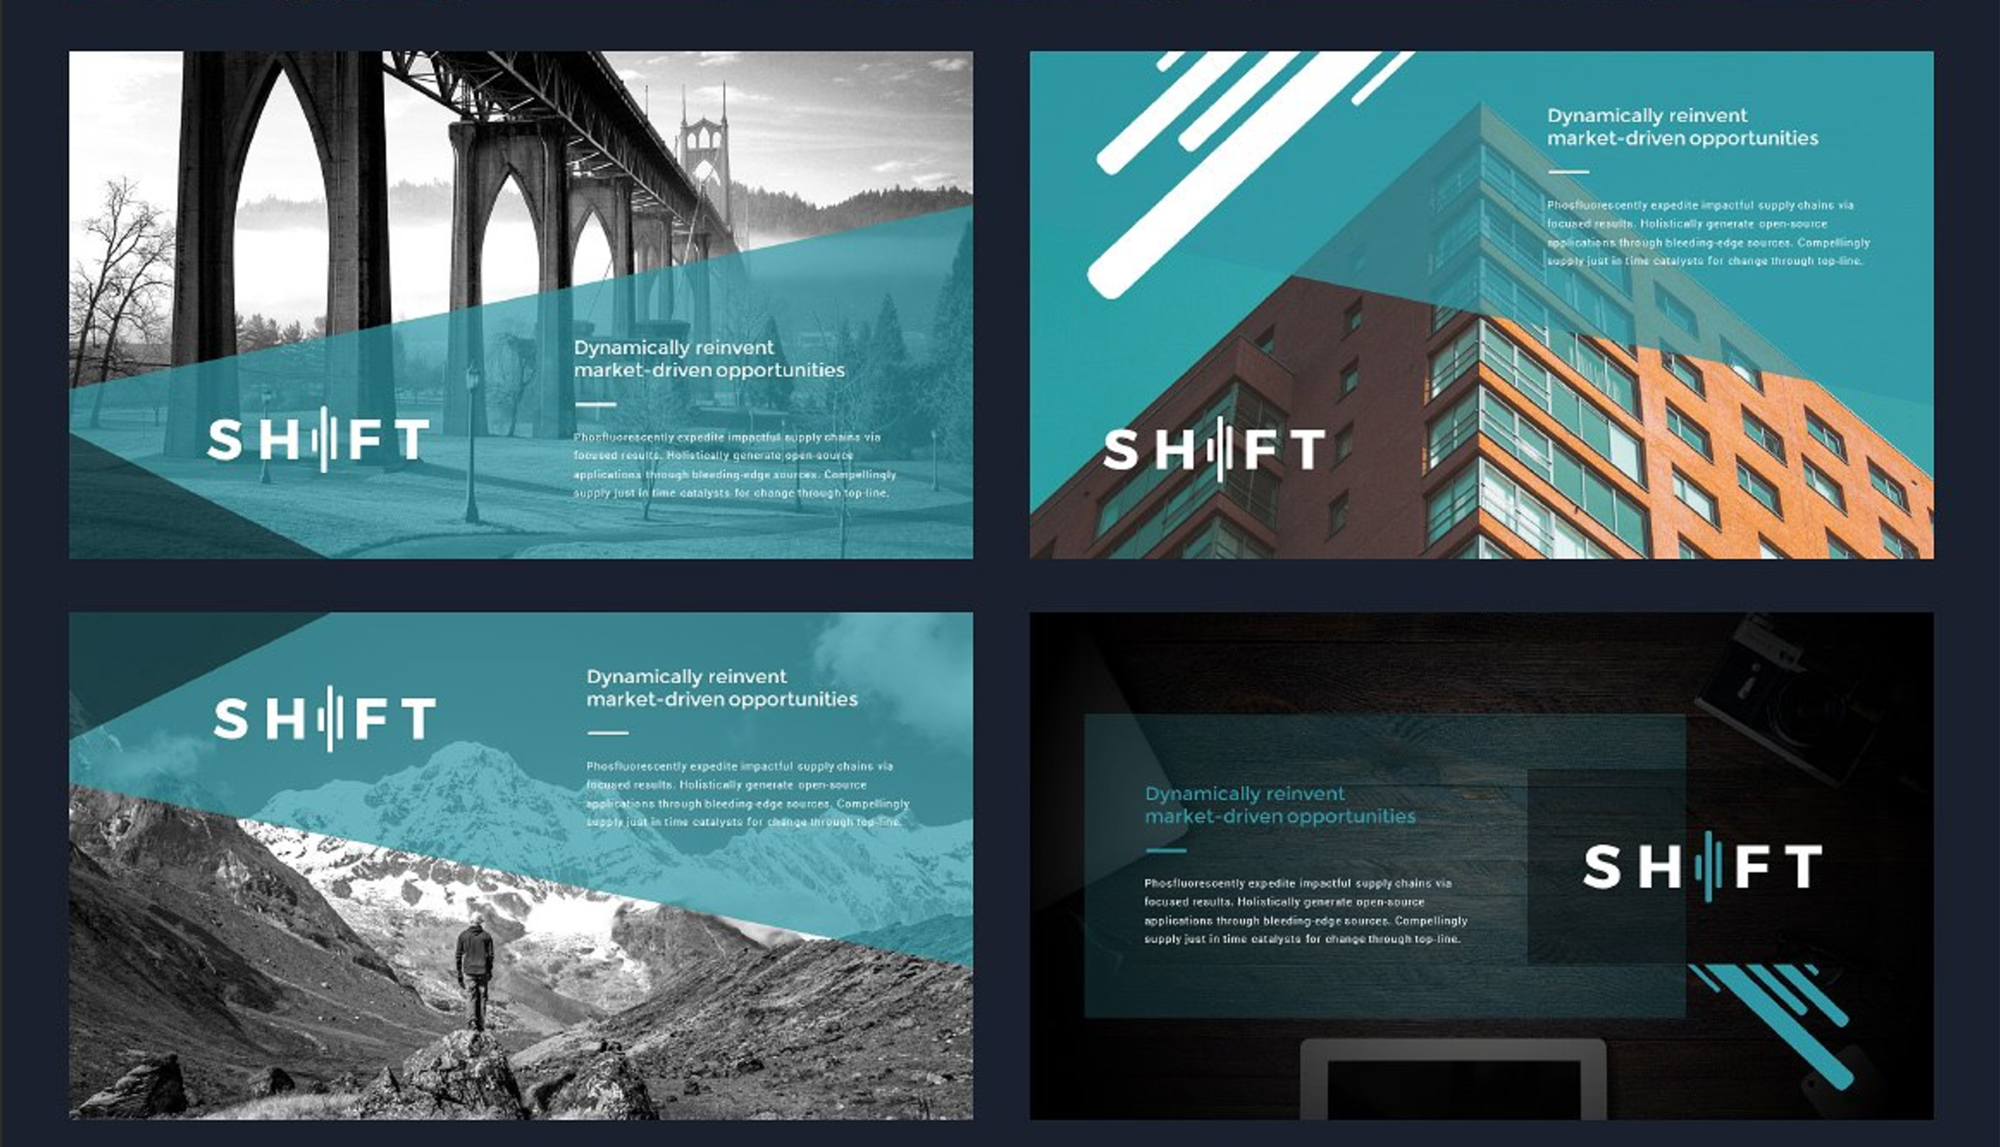 15 presentation designs styles that wow an audience every time